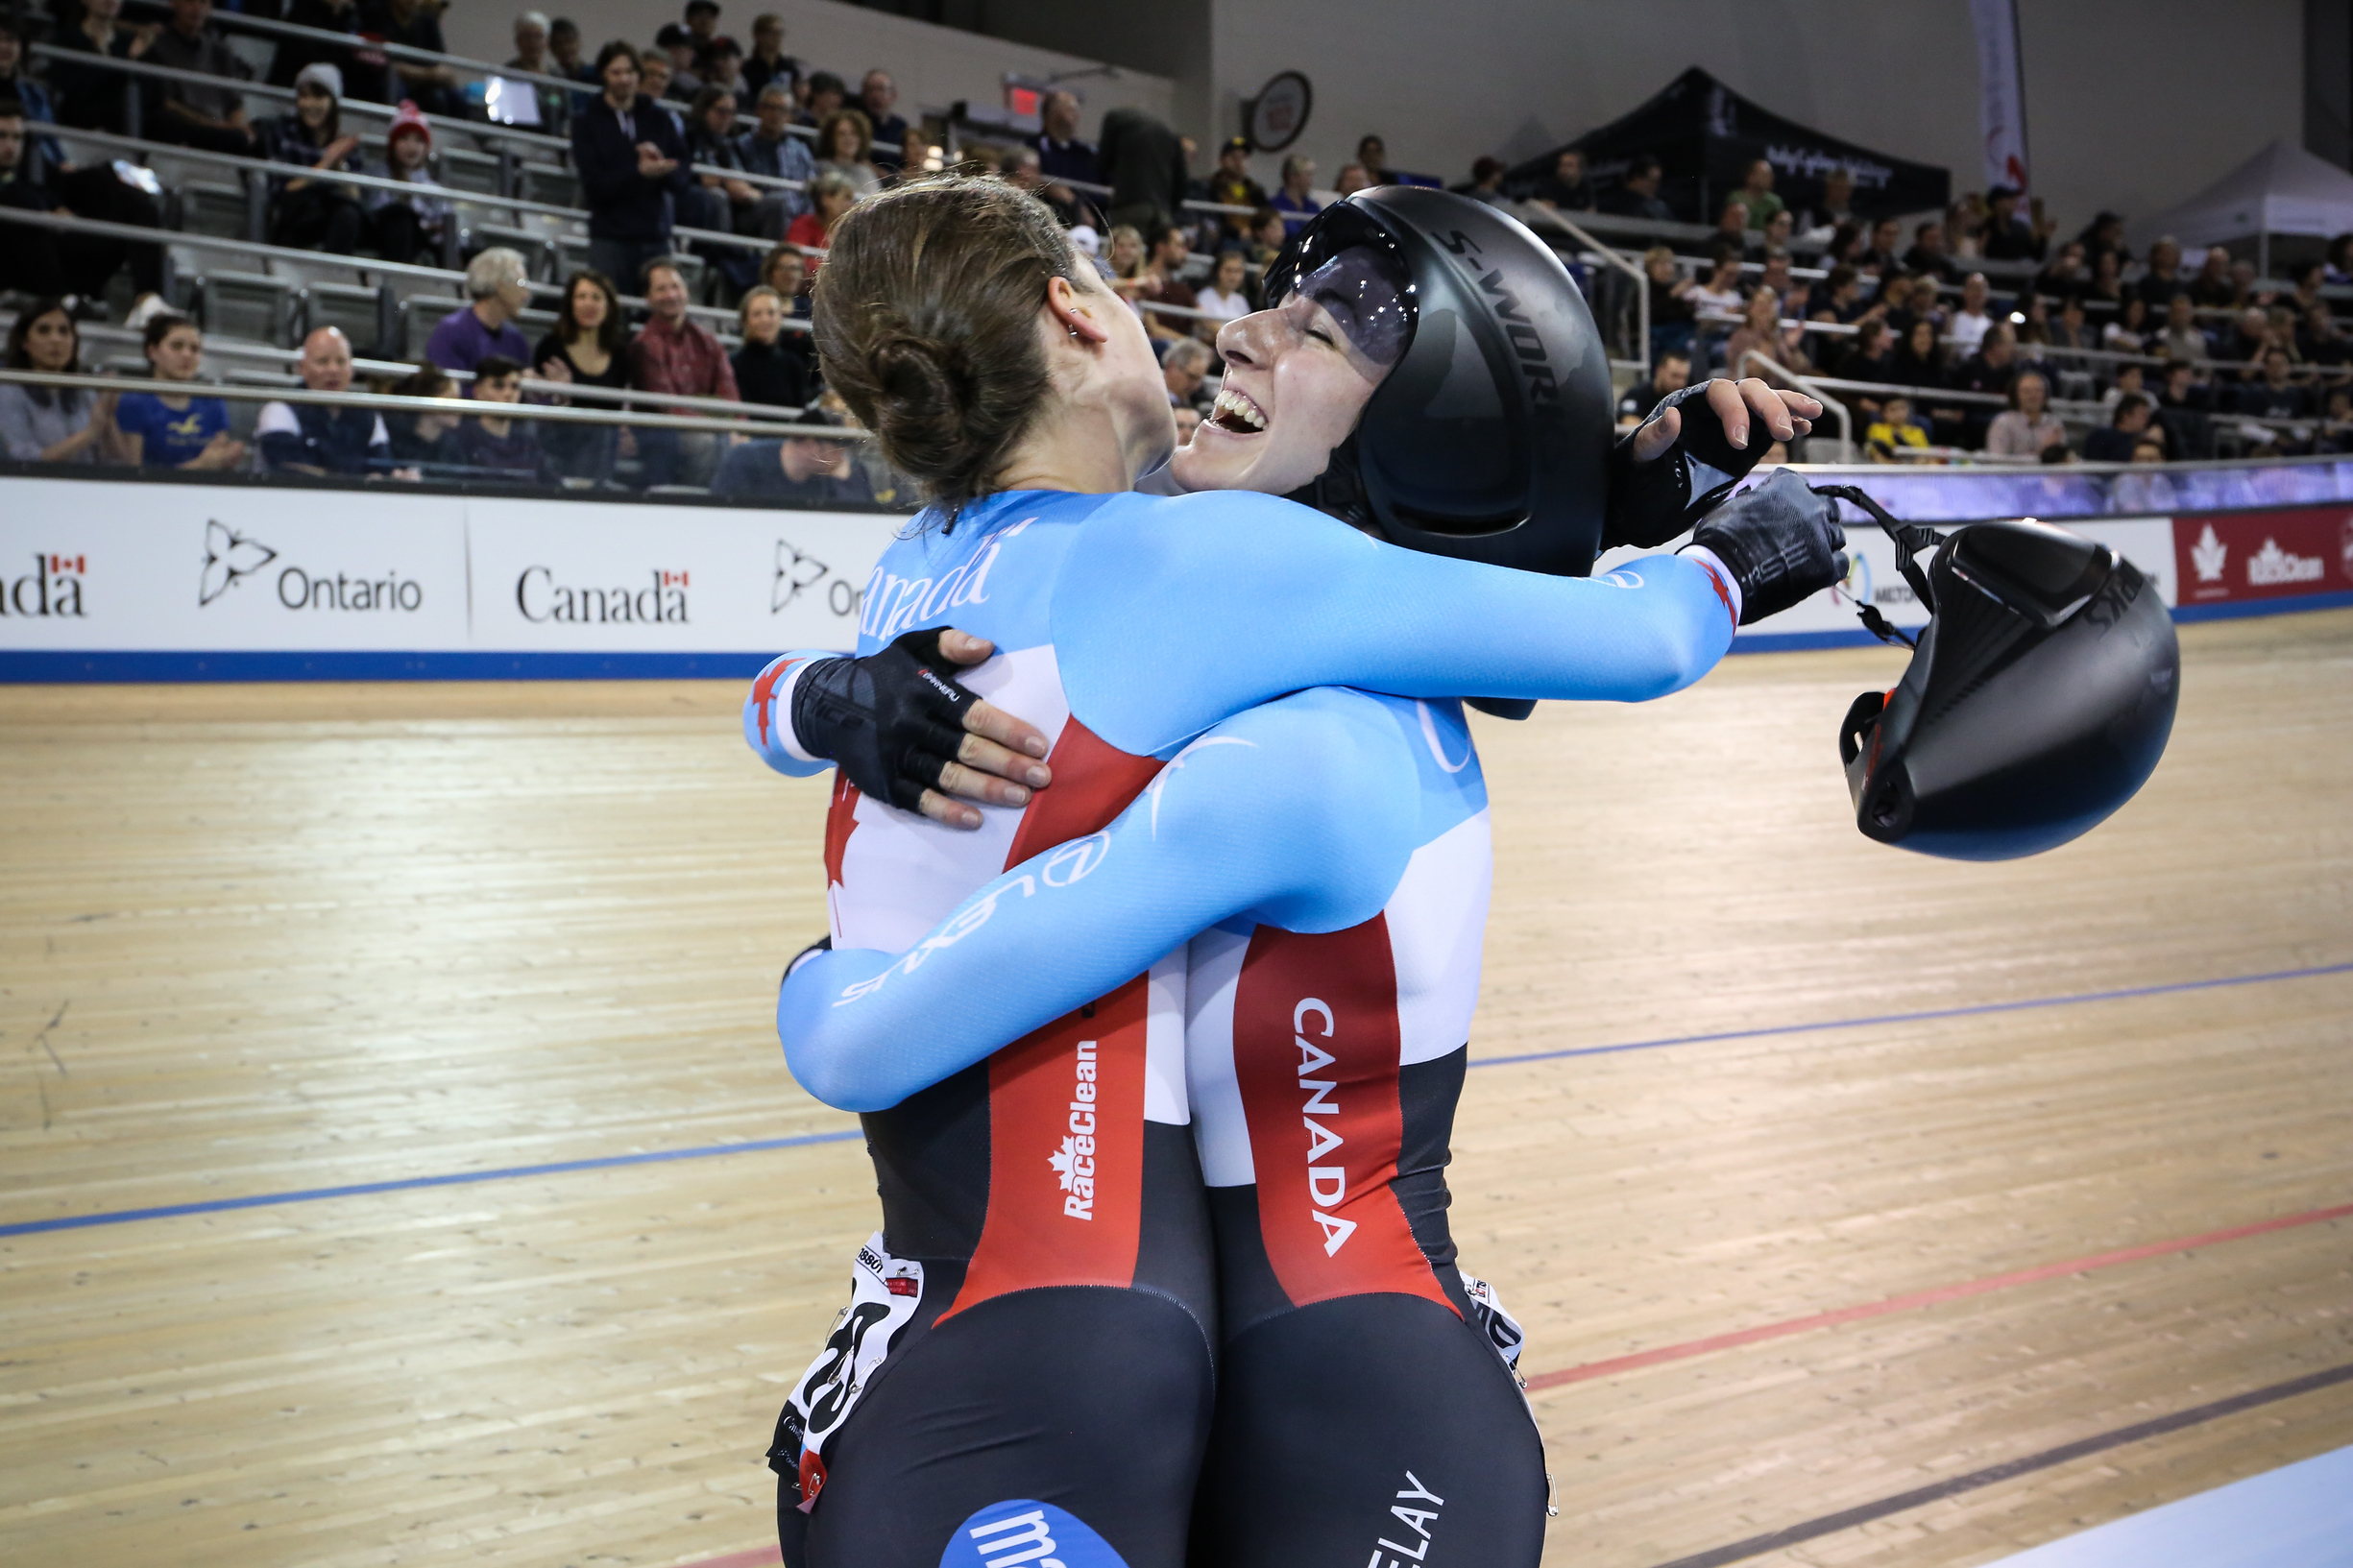 And this is what it feels like to win on home turf! - photo by Peter Kraiker (Ariane Bonhomme & Kinley Gibson)